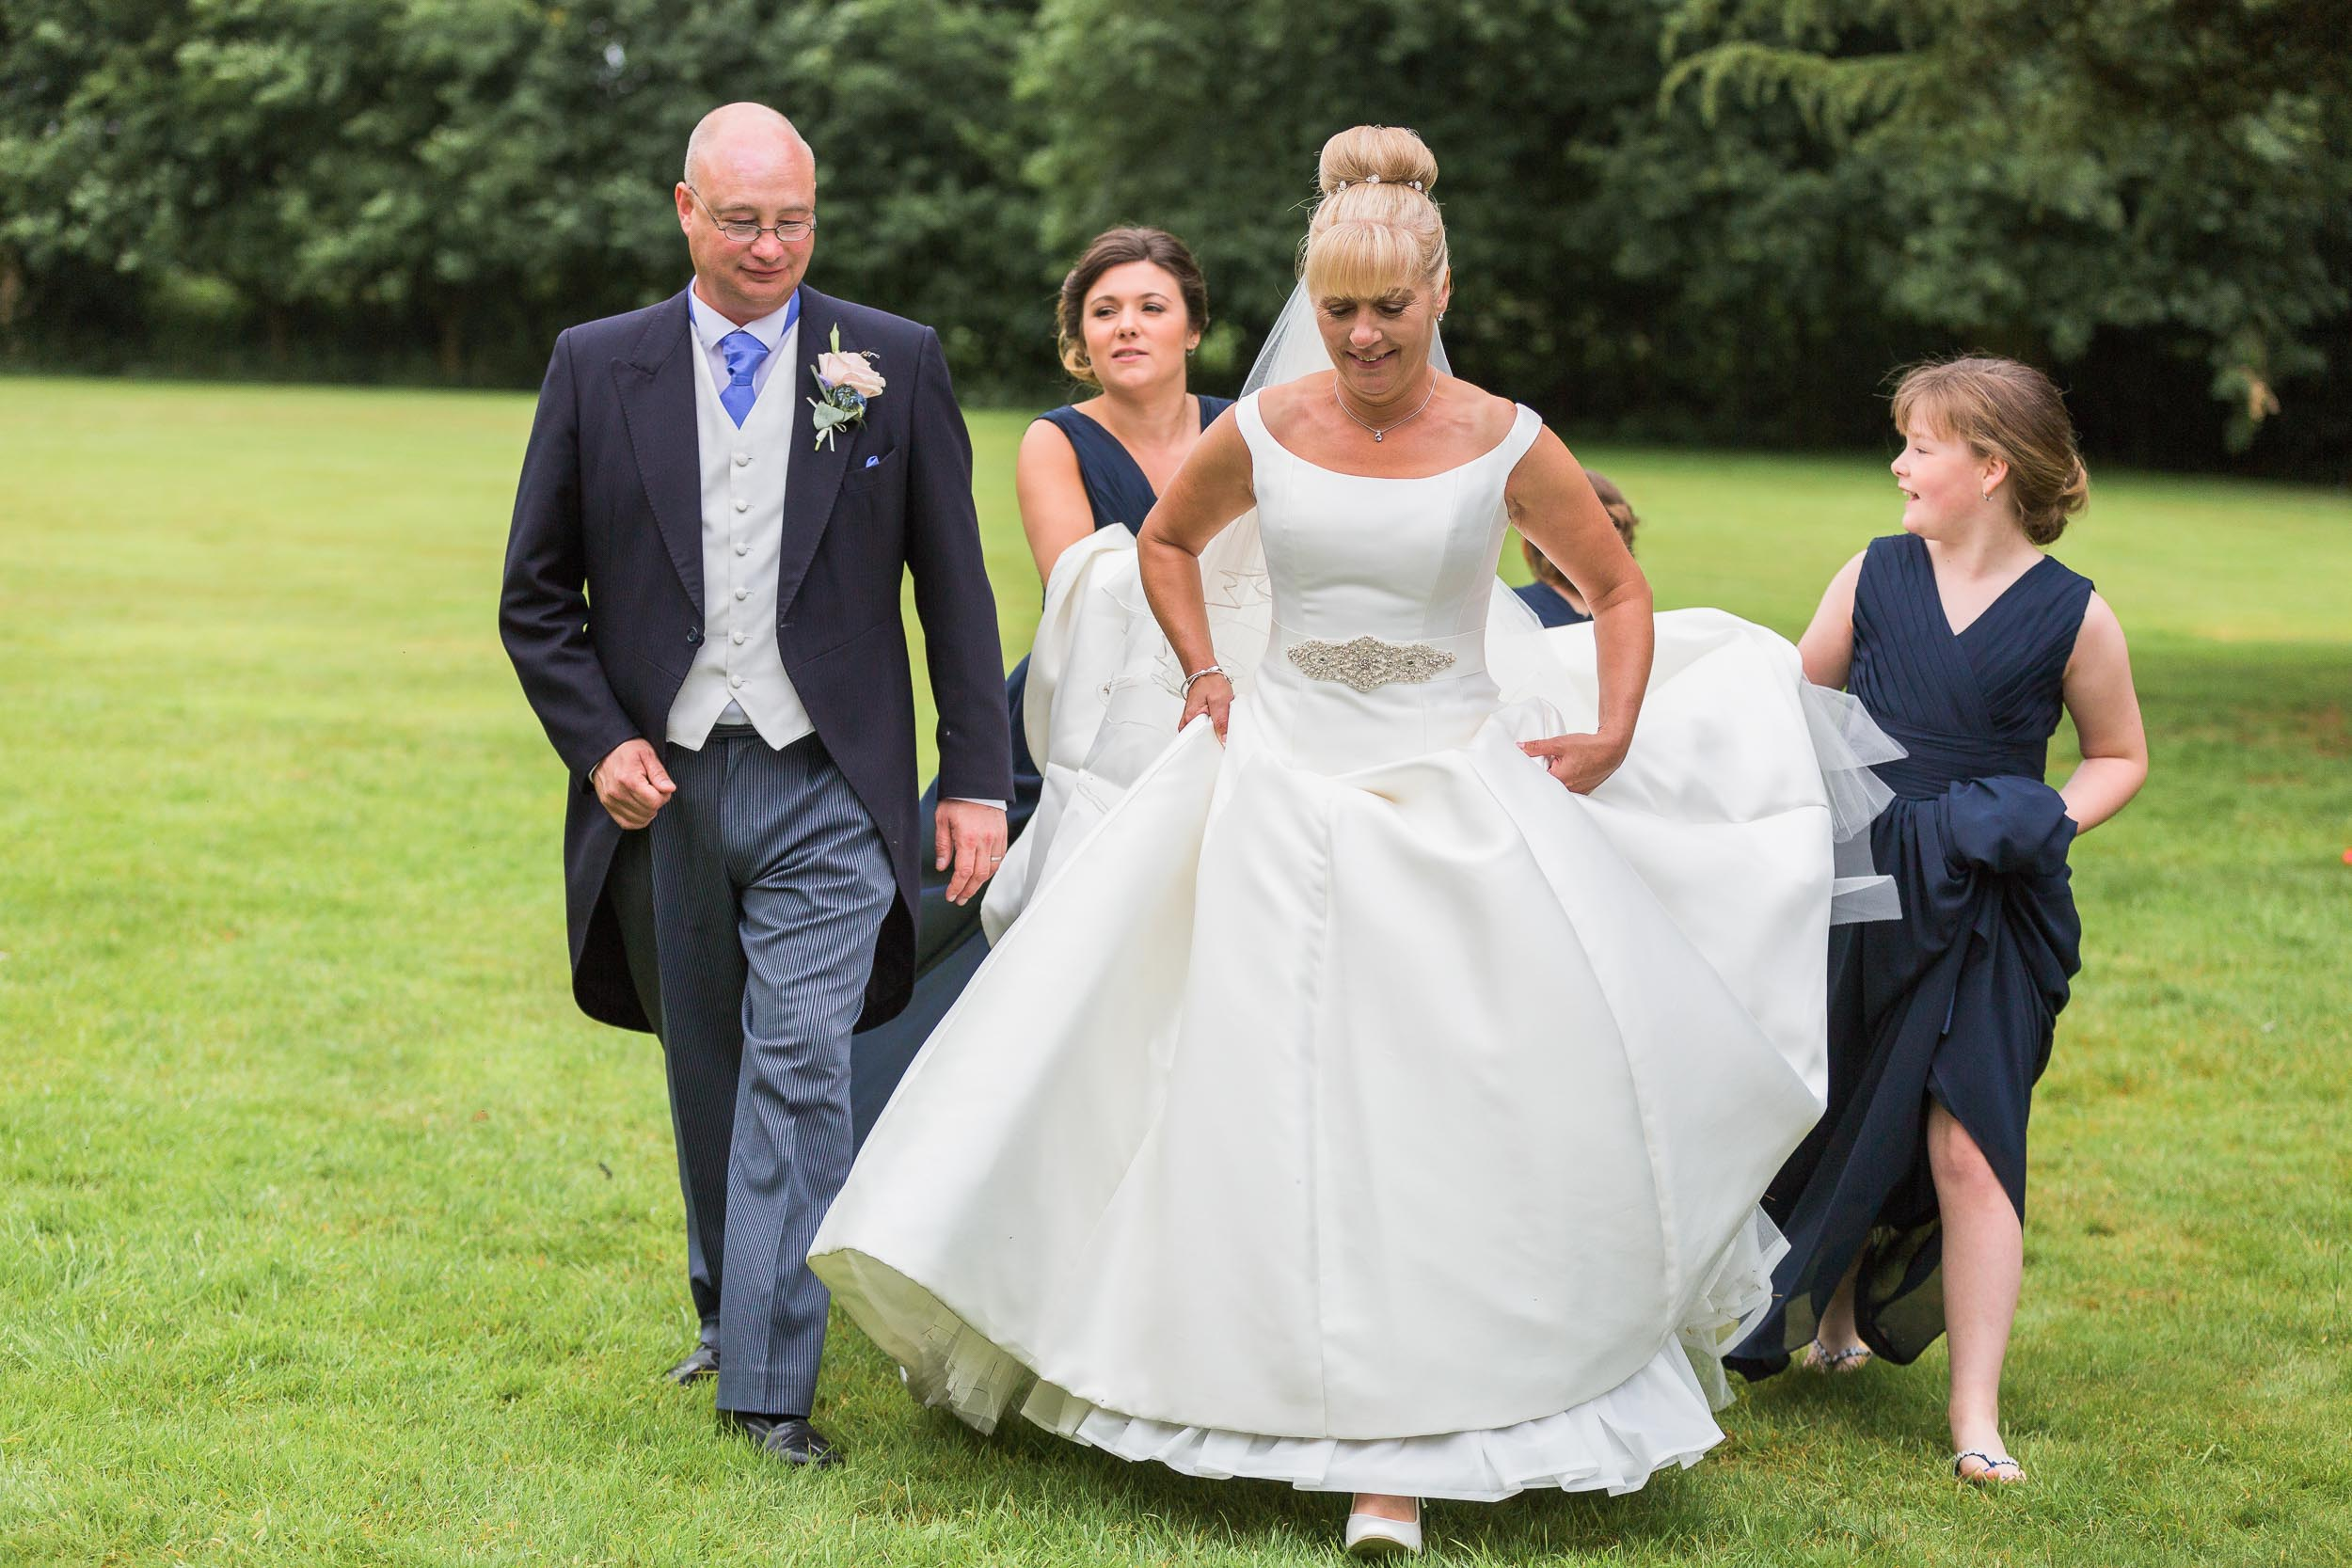 Kirsty & Kevin-Wedding-Bartle Hal-Lancashire-photo-460.jpg